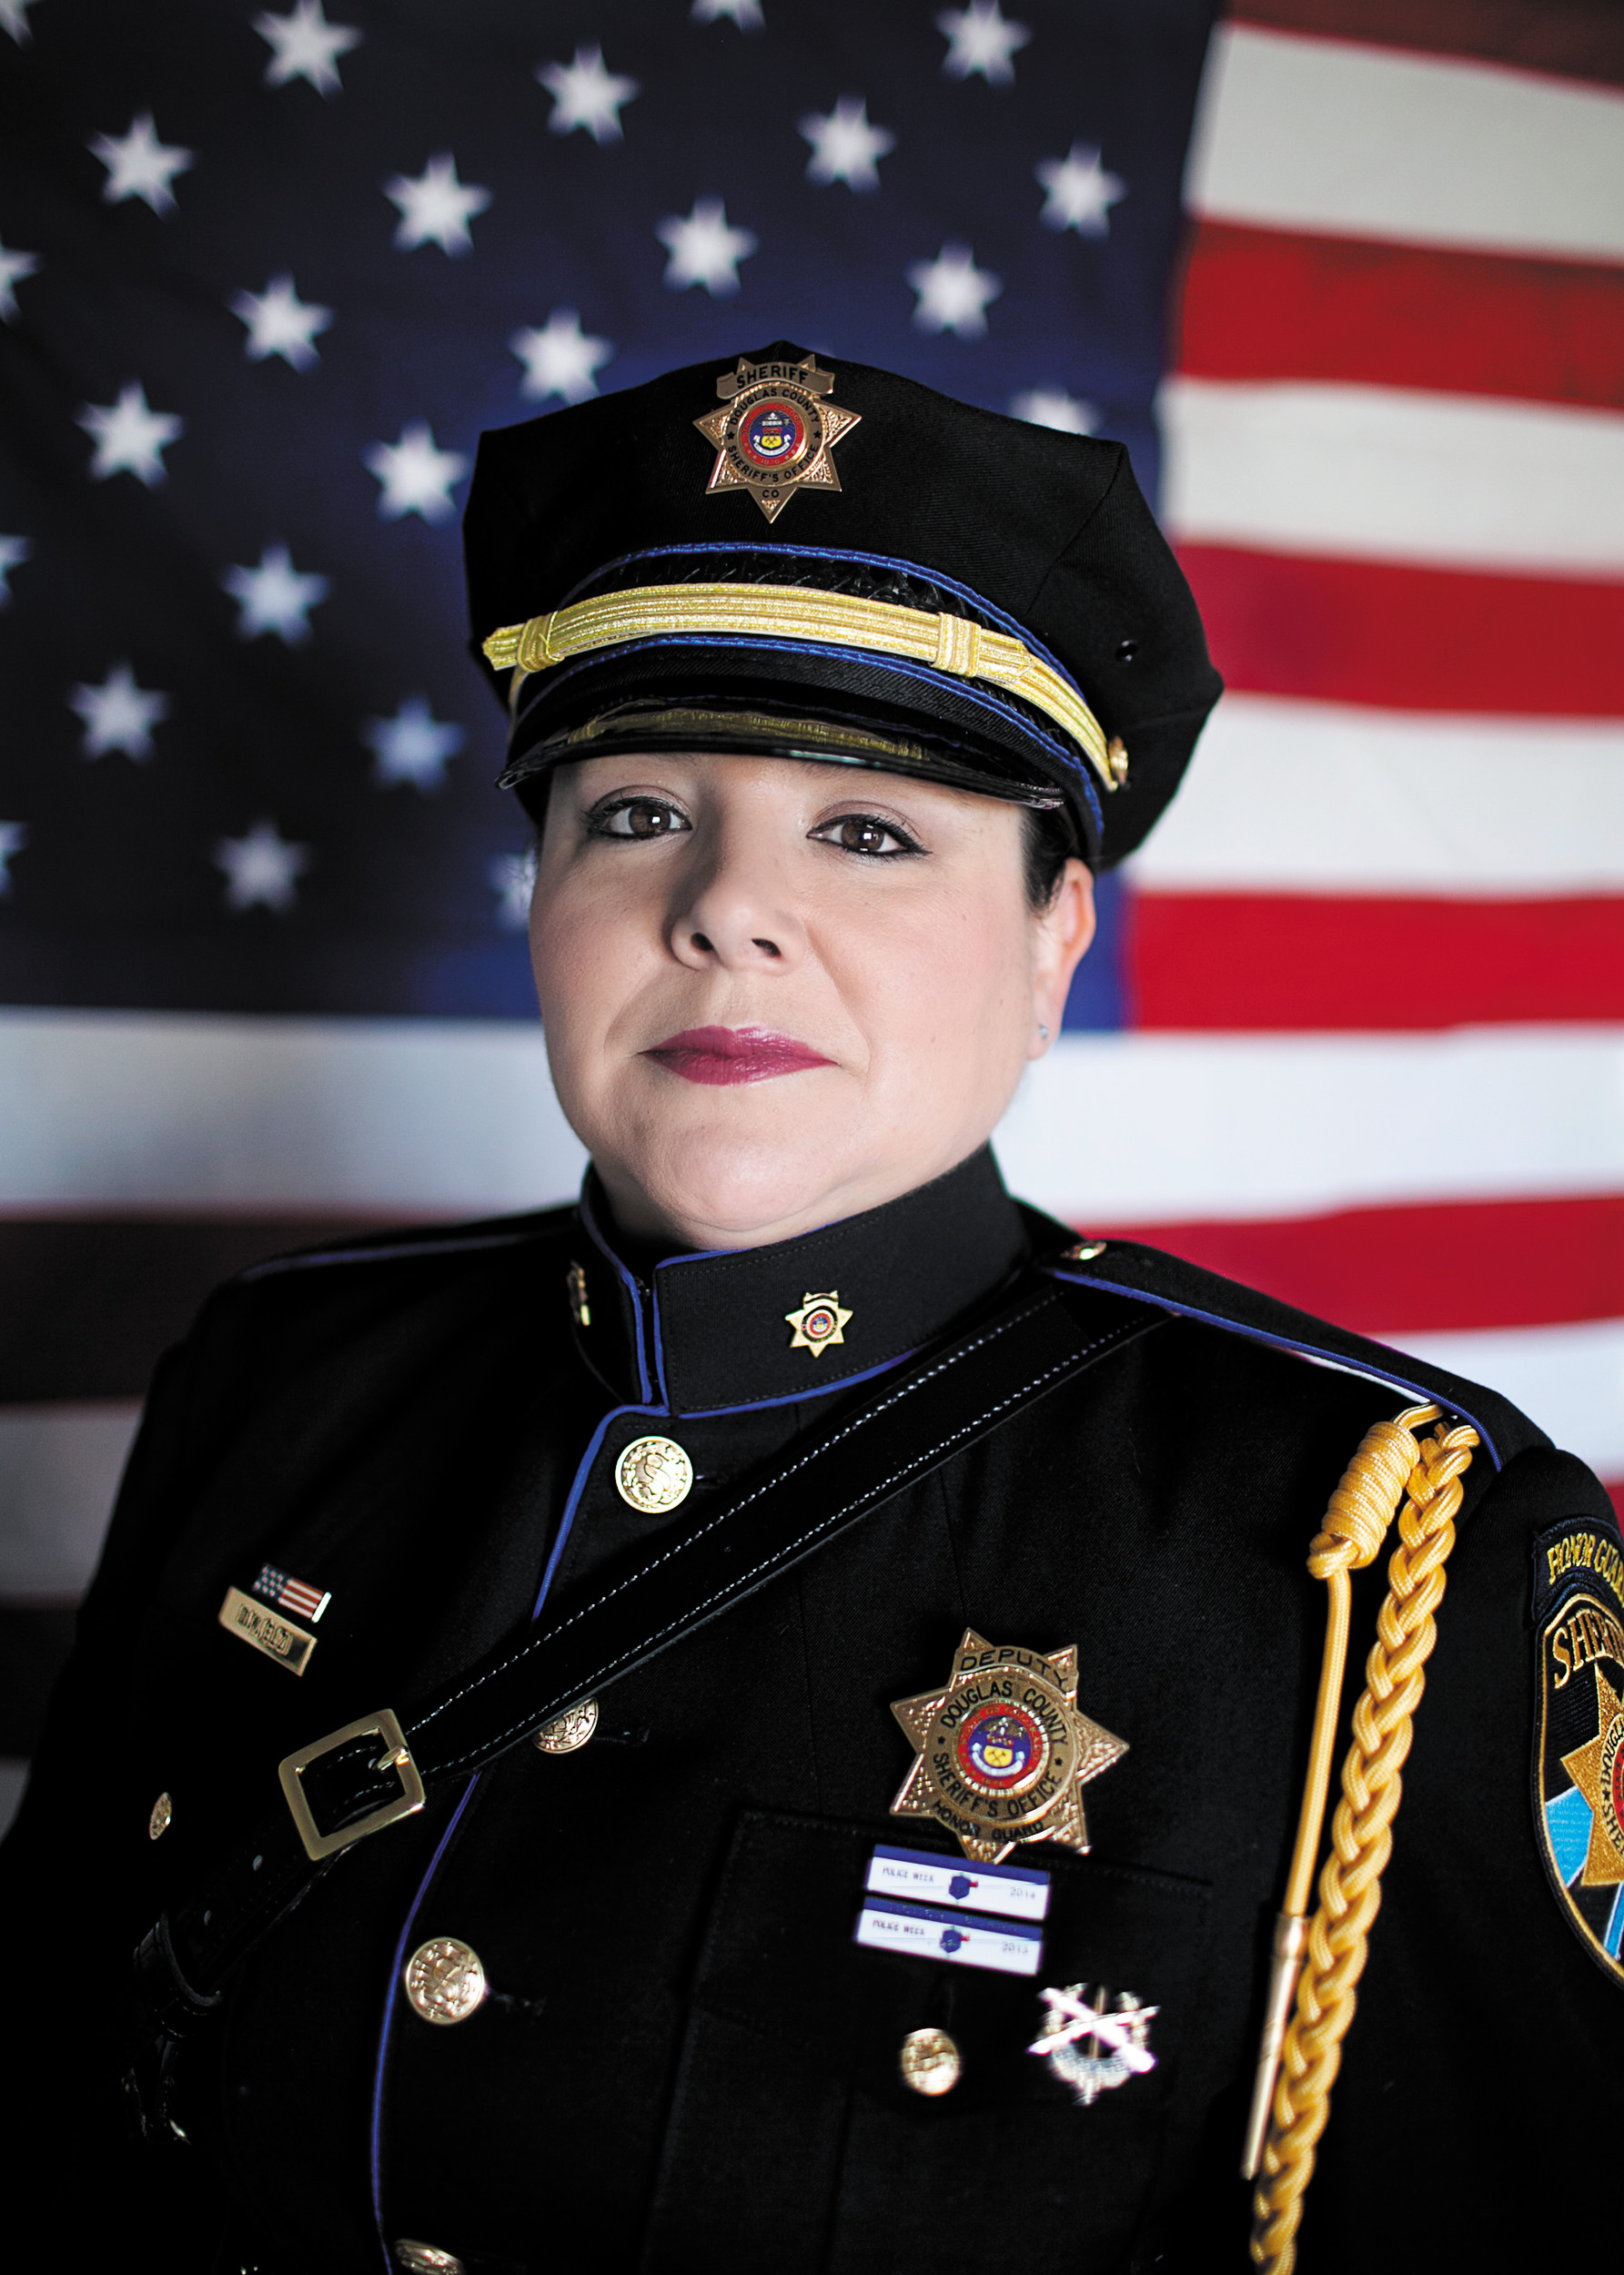 Deputy Dawn Elzi of the Douglas County Sheriff's Office will be preforming the national anthem at the candle light vigil for fallen officers in Washington DC  May 13 as part of national police week.